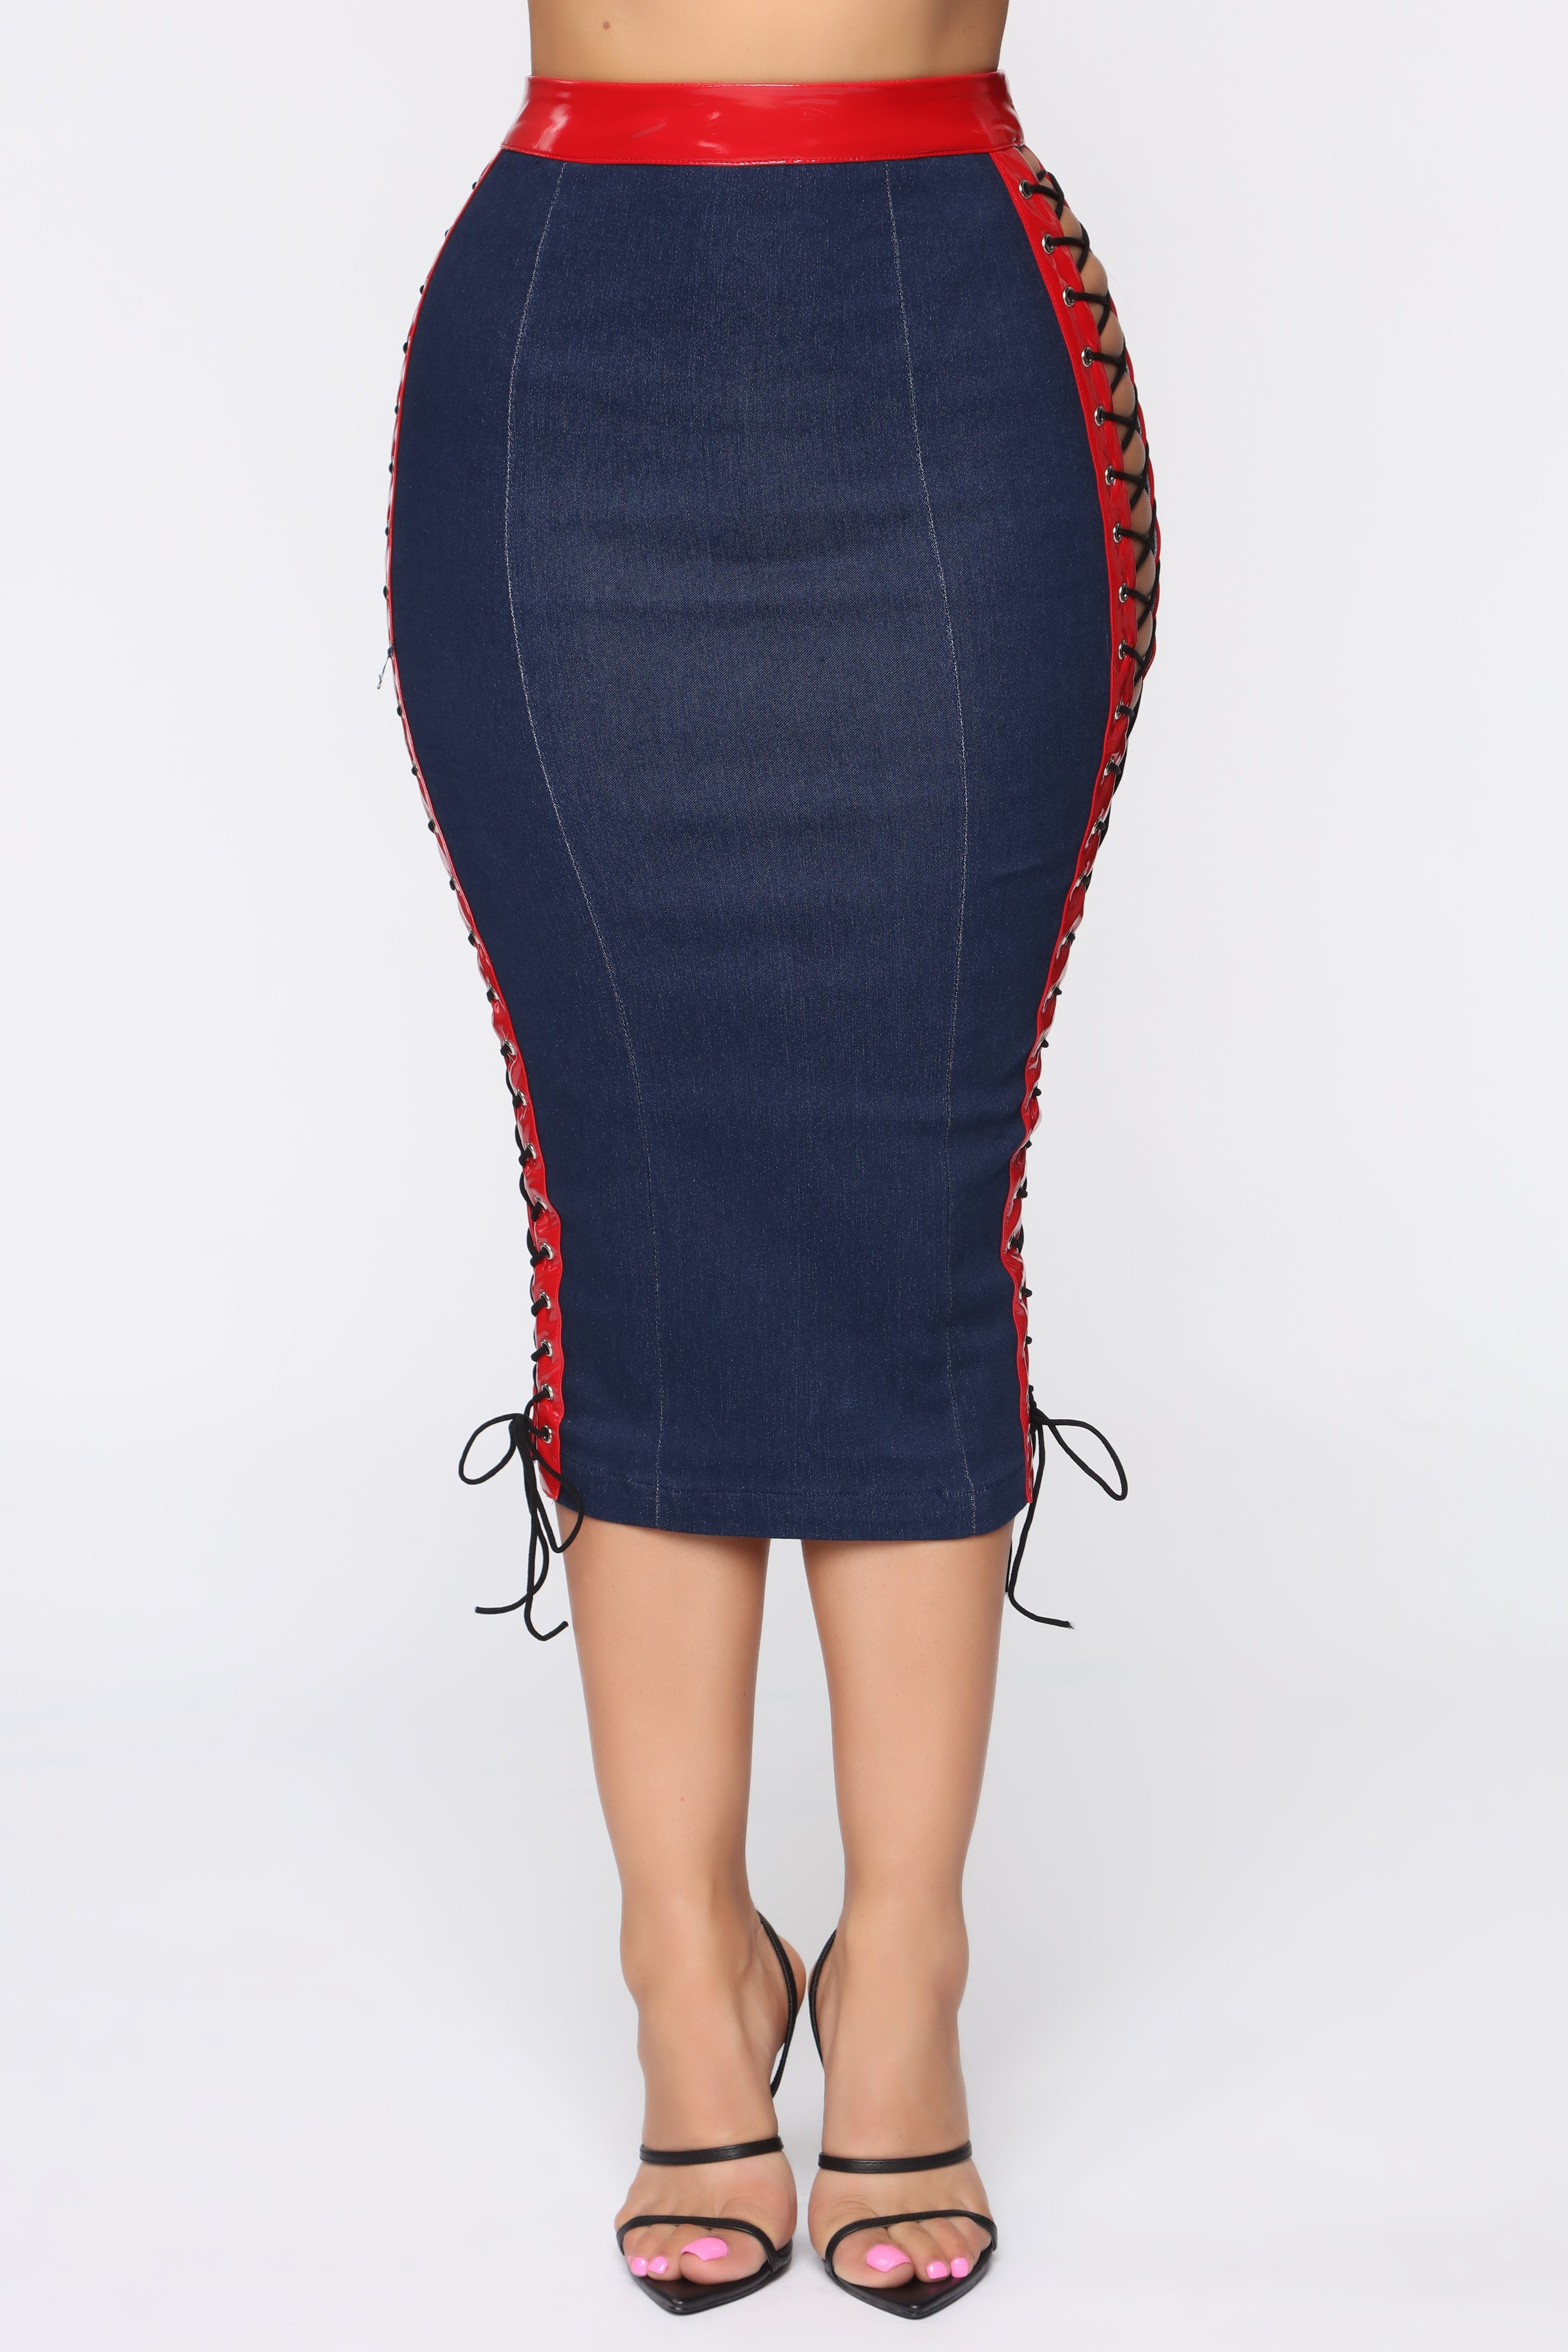 4d048603f0ecd Out Of This World Skirt Set - Red/Denim